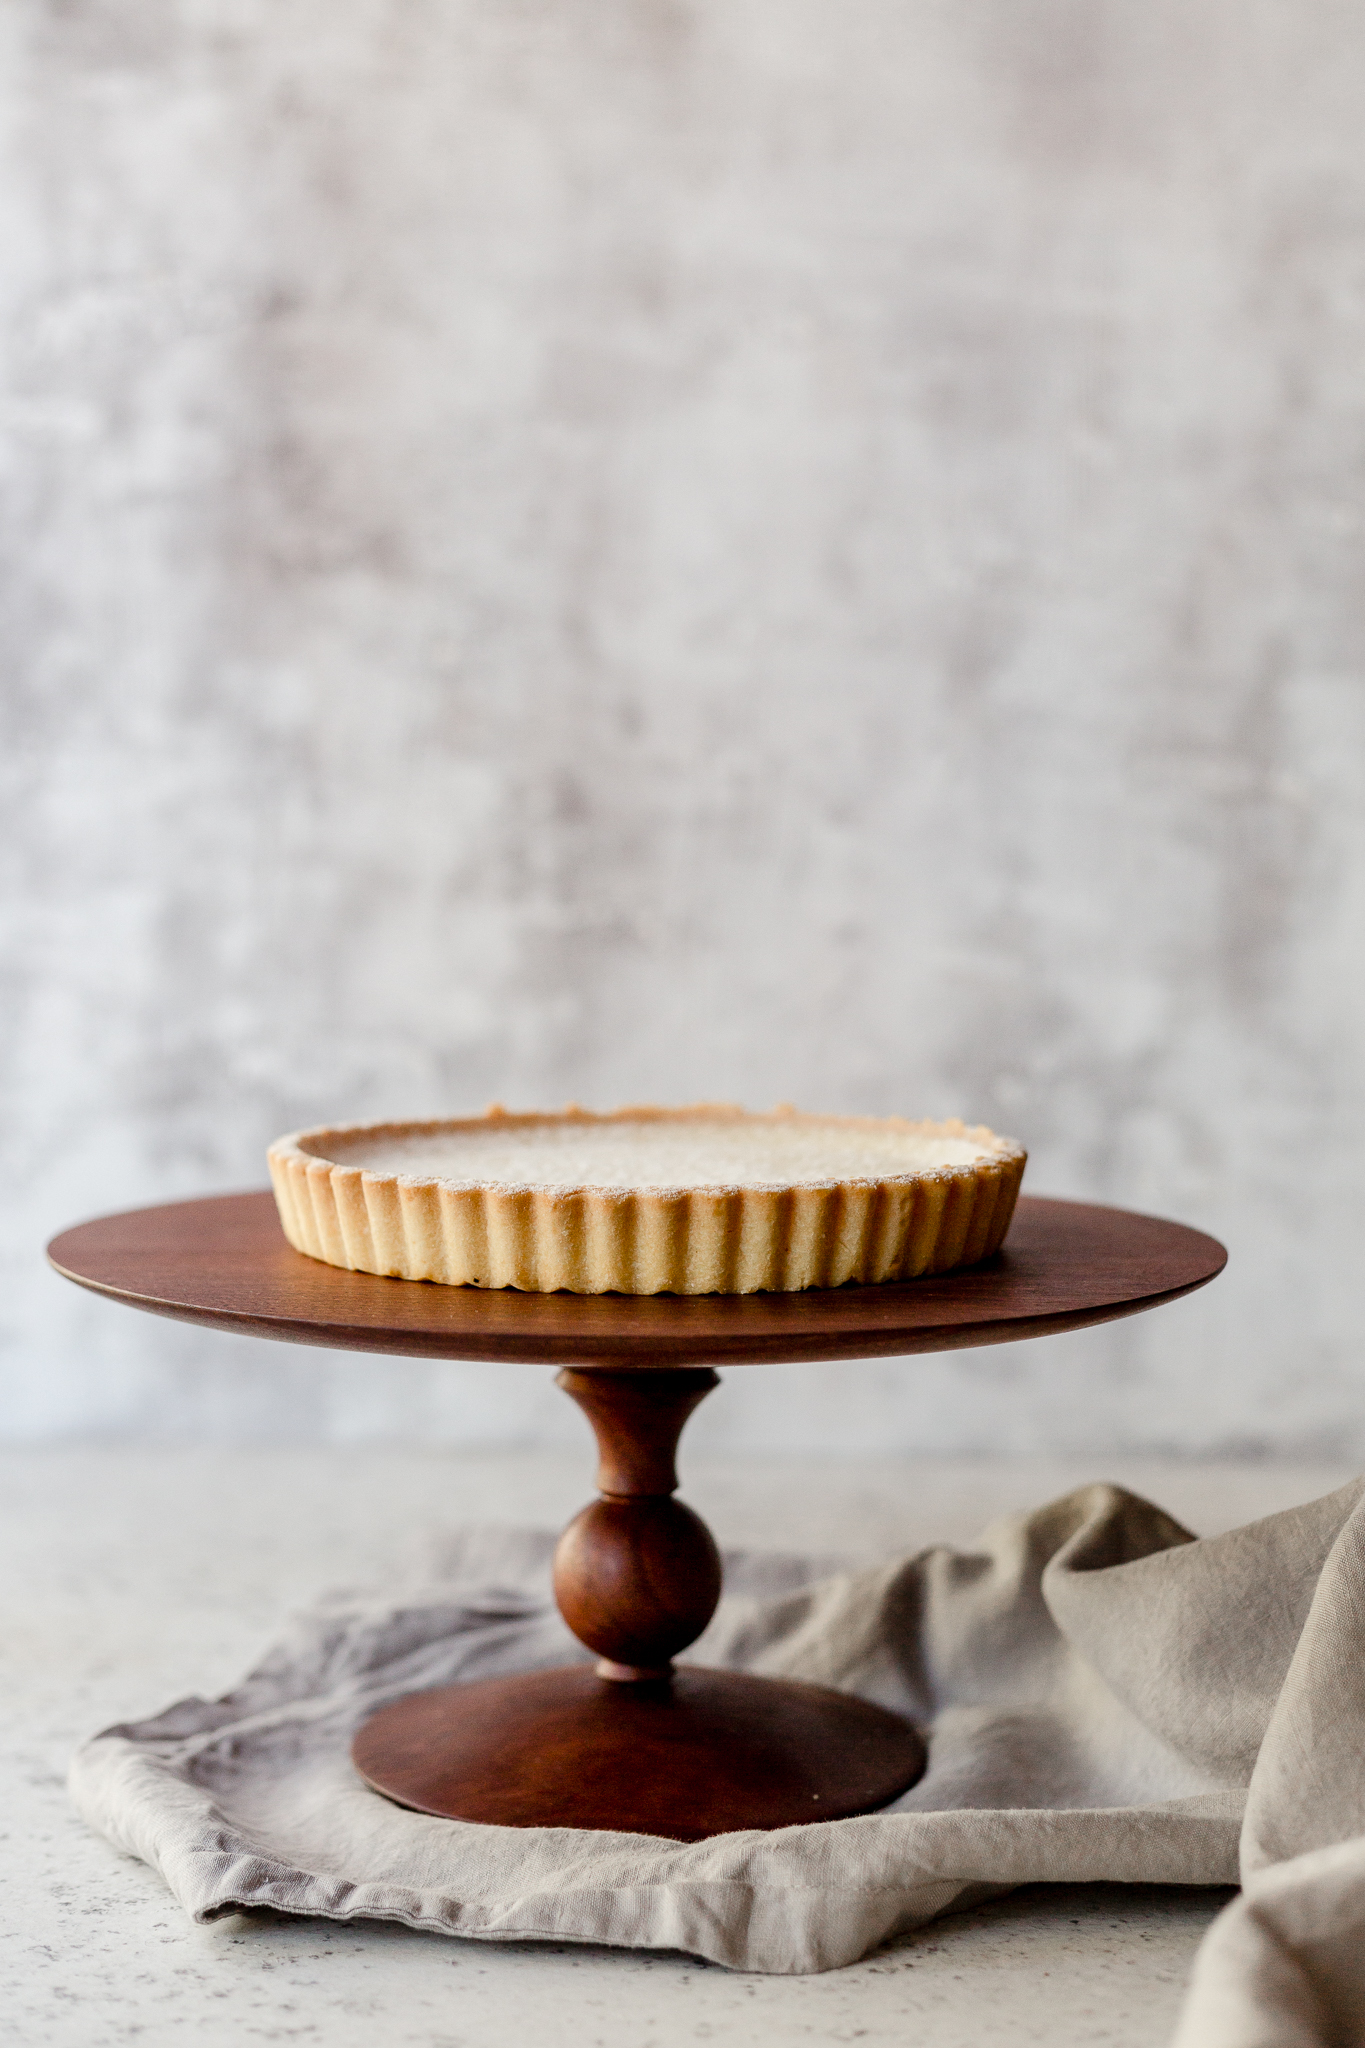 CAKE STANDS - Every cake (and cupcake!) deserves to be served on a beautiful cake stand. With timeless elegance, these will be passed through the generations along with Grandma's famous rhubarb pie recipe.